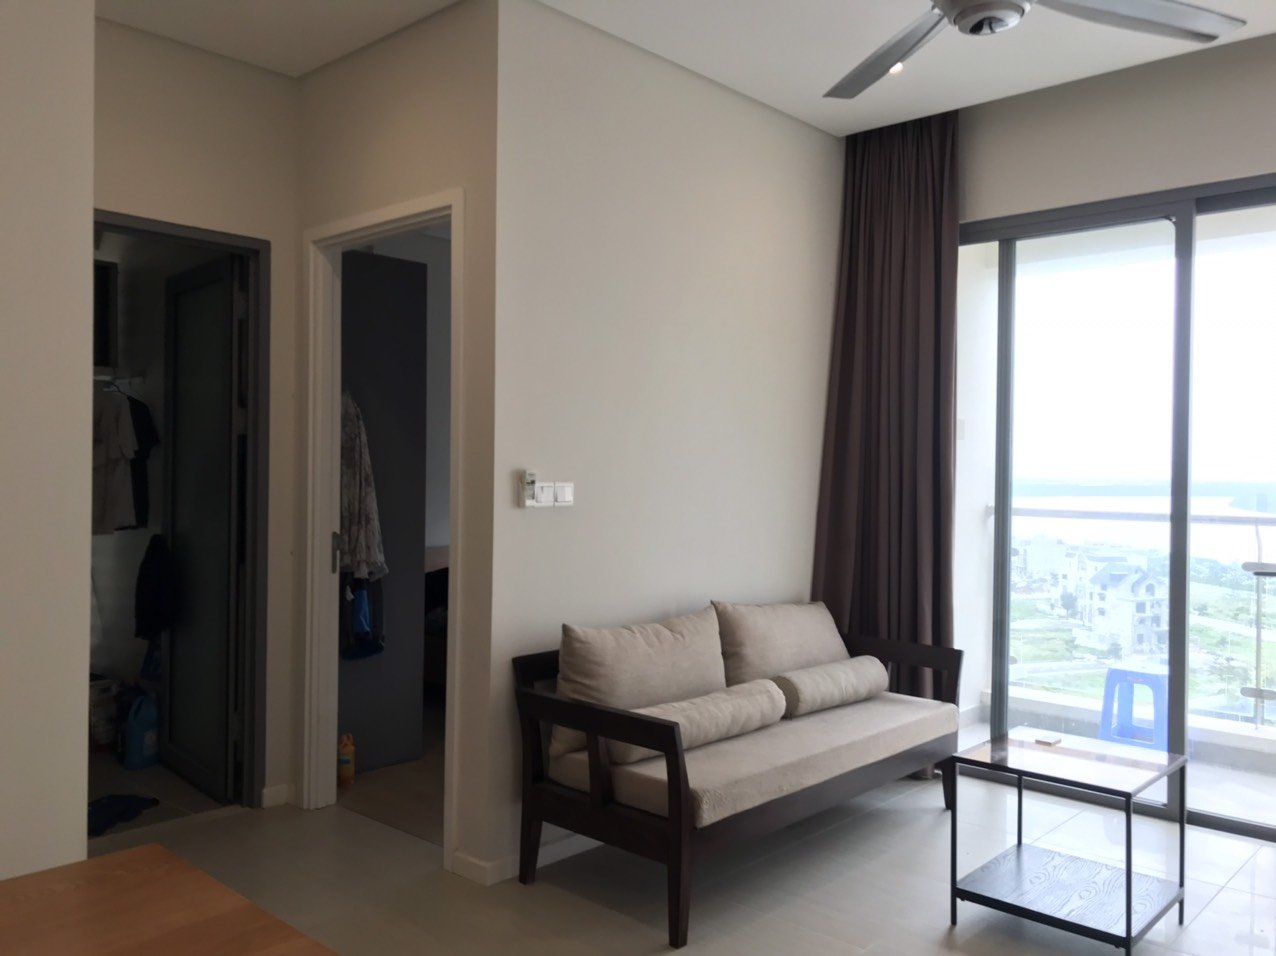 DI0955 - Diamond Island Apartment For Rent & Sale in Ho Chi Minh City - 1 bedroom